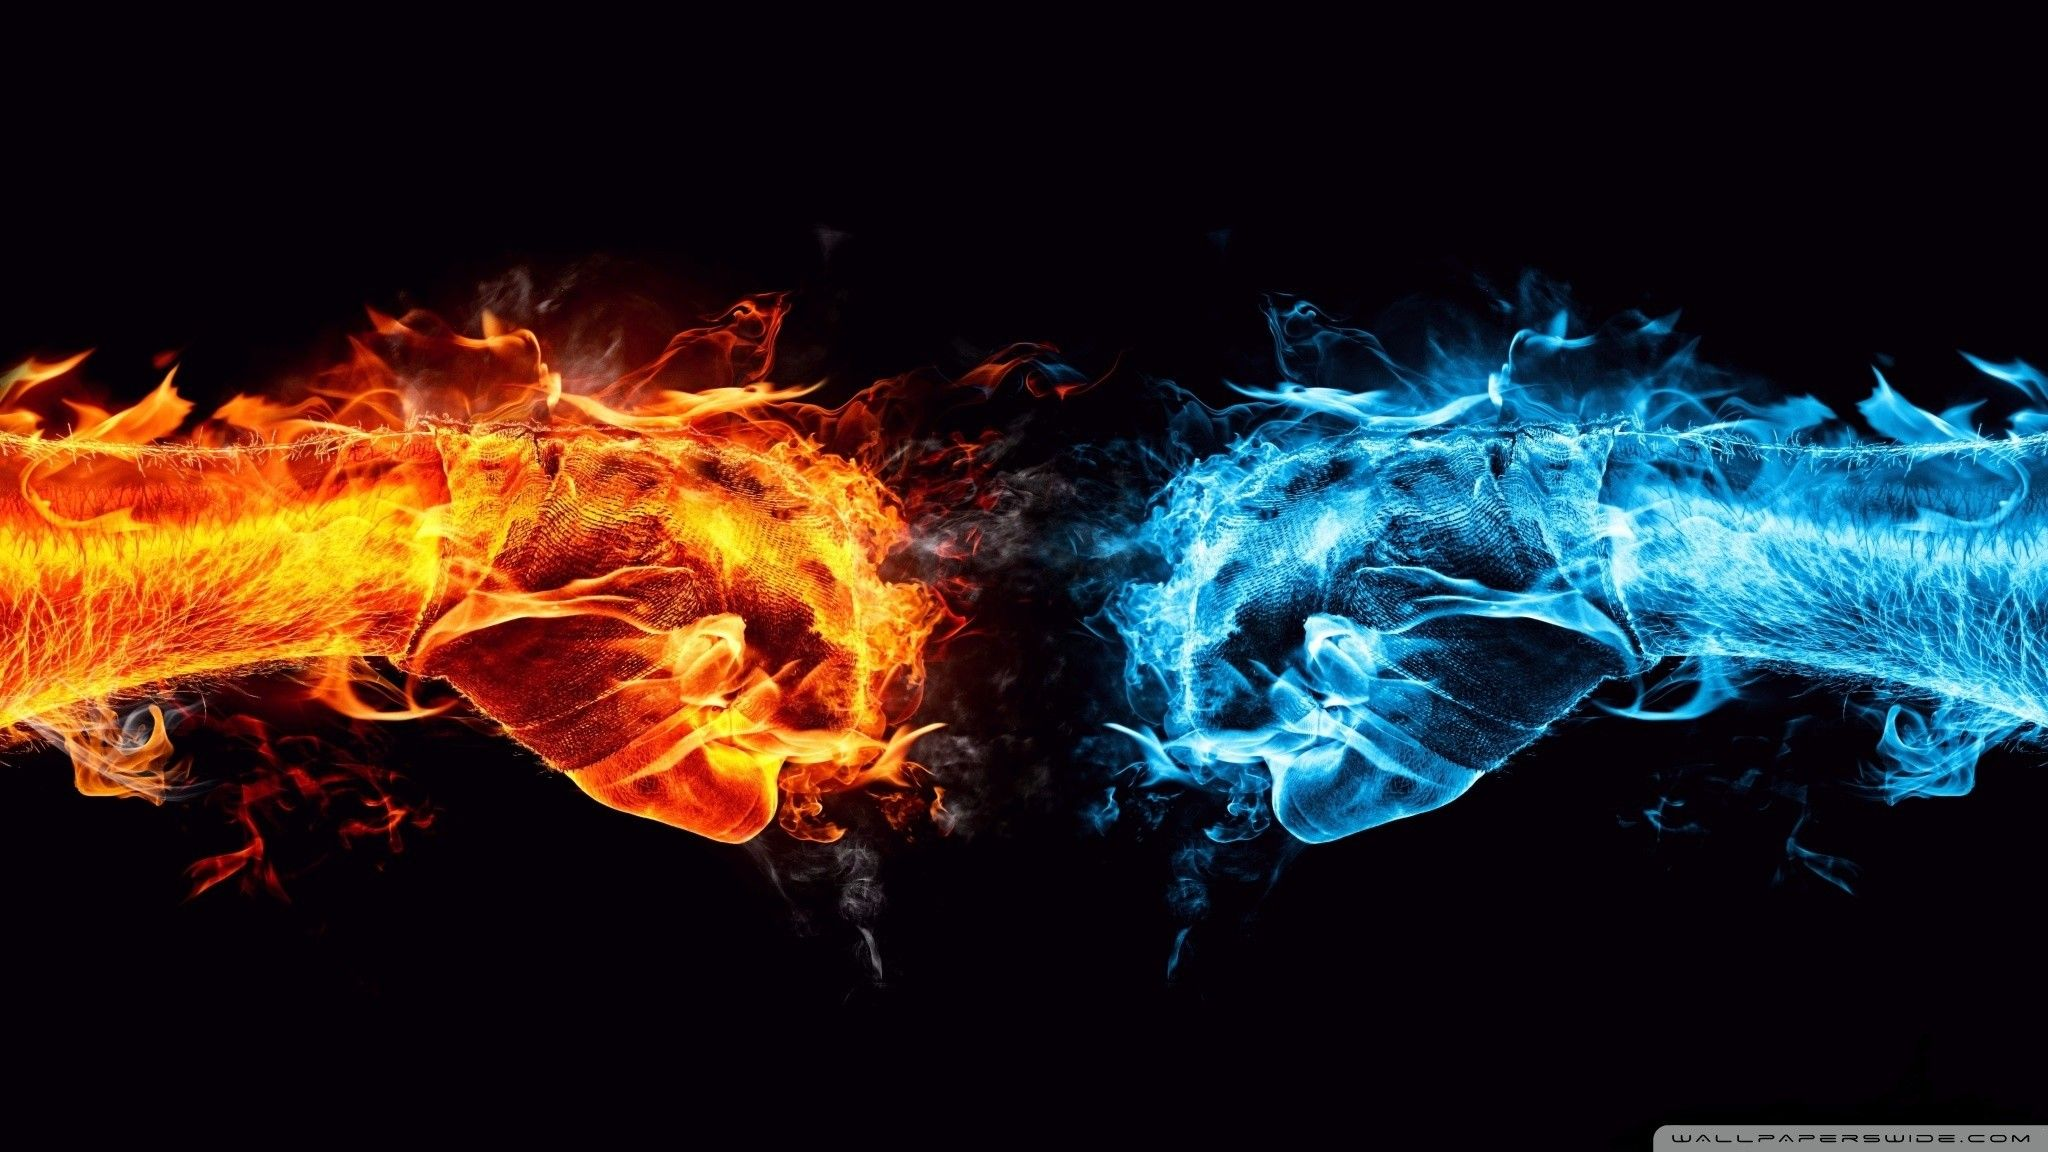 2048x1152 Fire And Ice Awesome Photo 4288903 Fire And Ice Wallpapers 2048x1152 2048x1152 Wallpapers Cool Backgrounds Just Do It Wallpapers